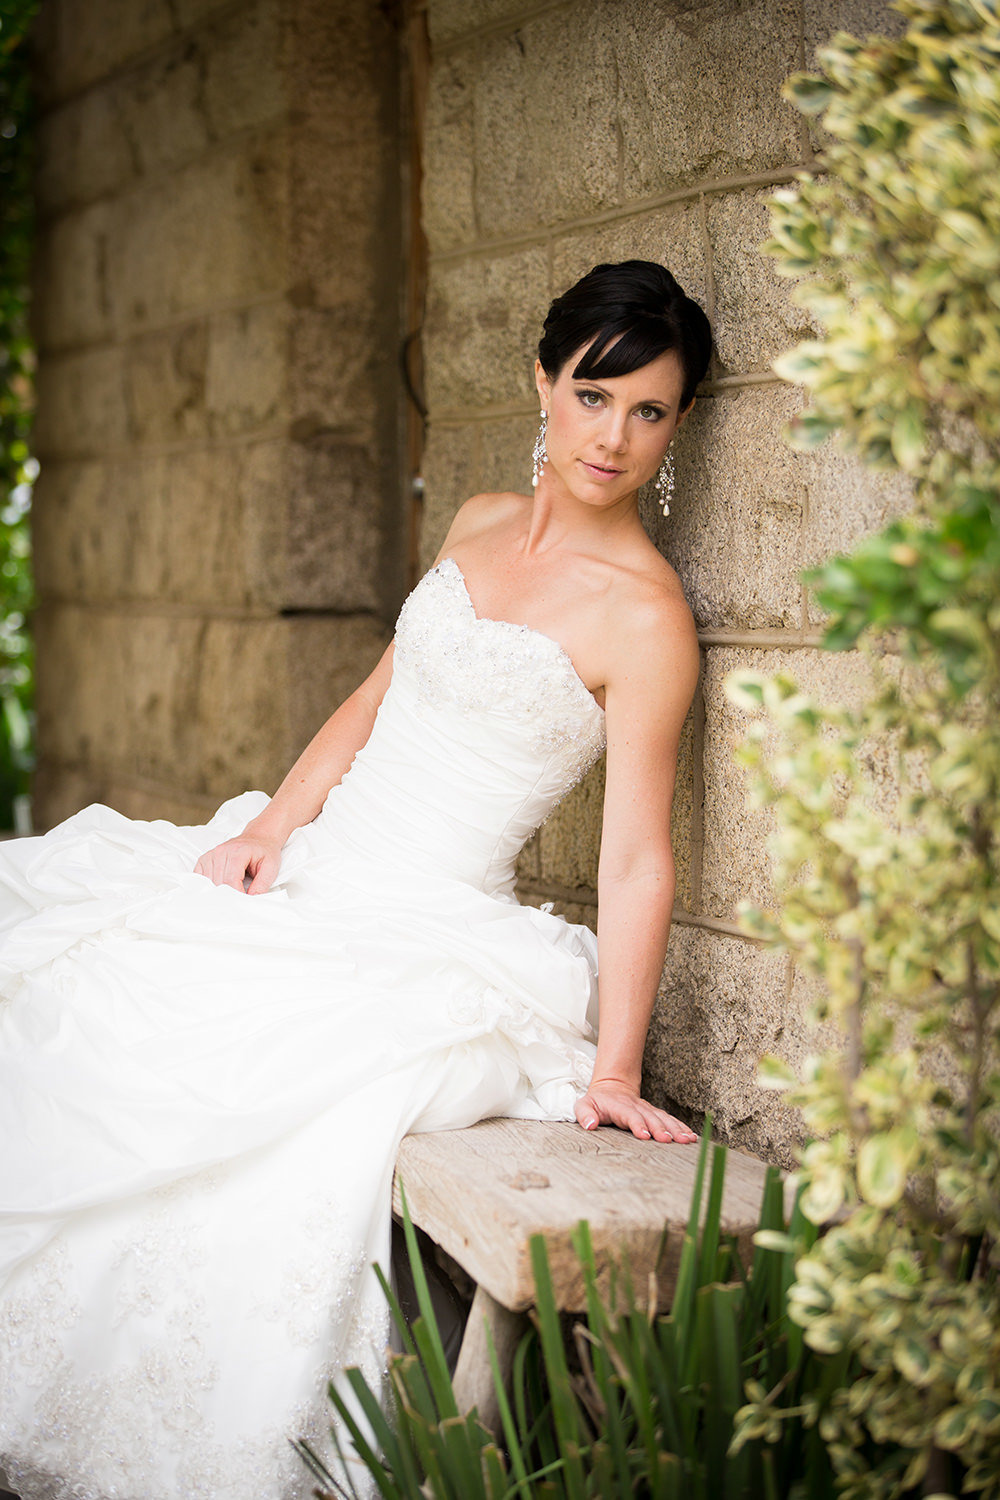 lovely bride image at leoness cellars